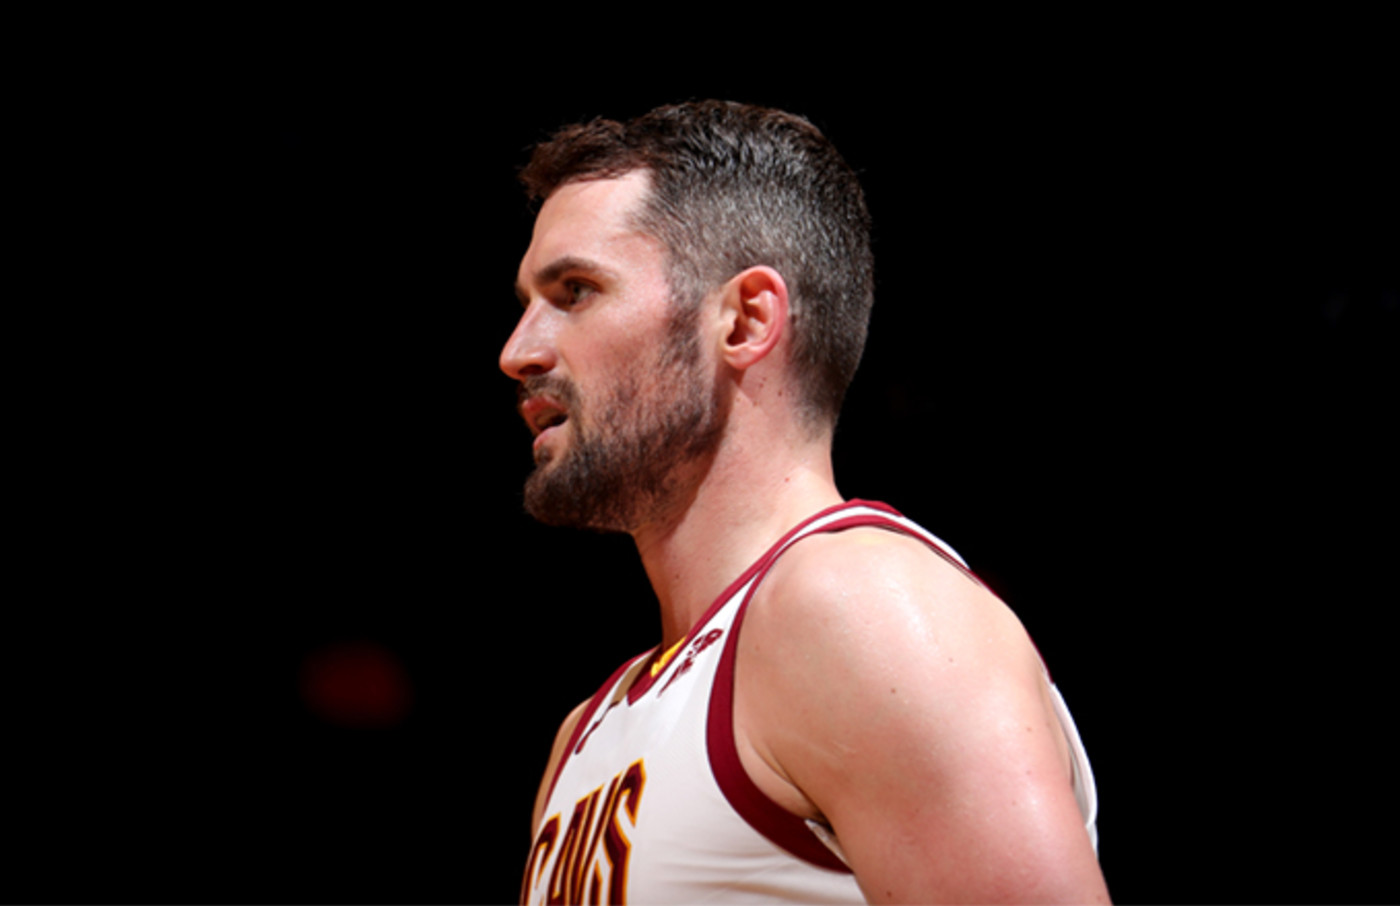 kevin-love-getty-2018-nathaniel-s-butler